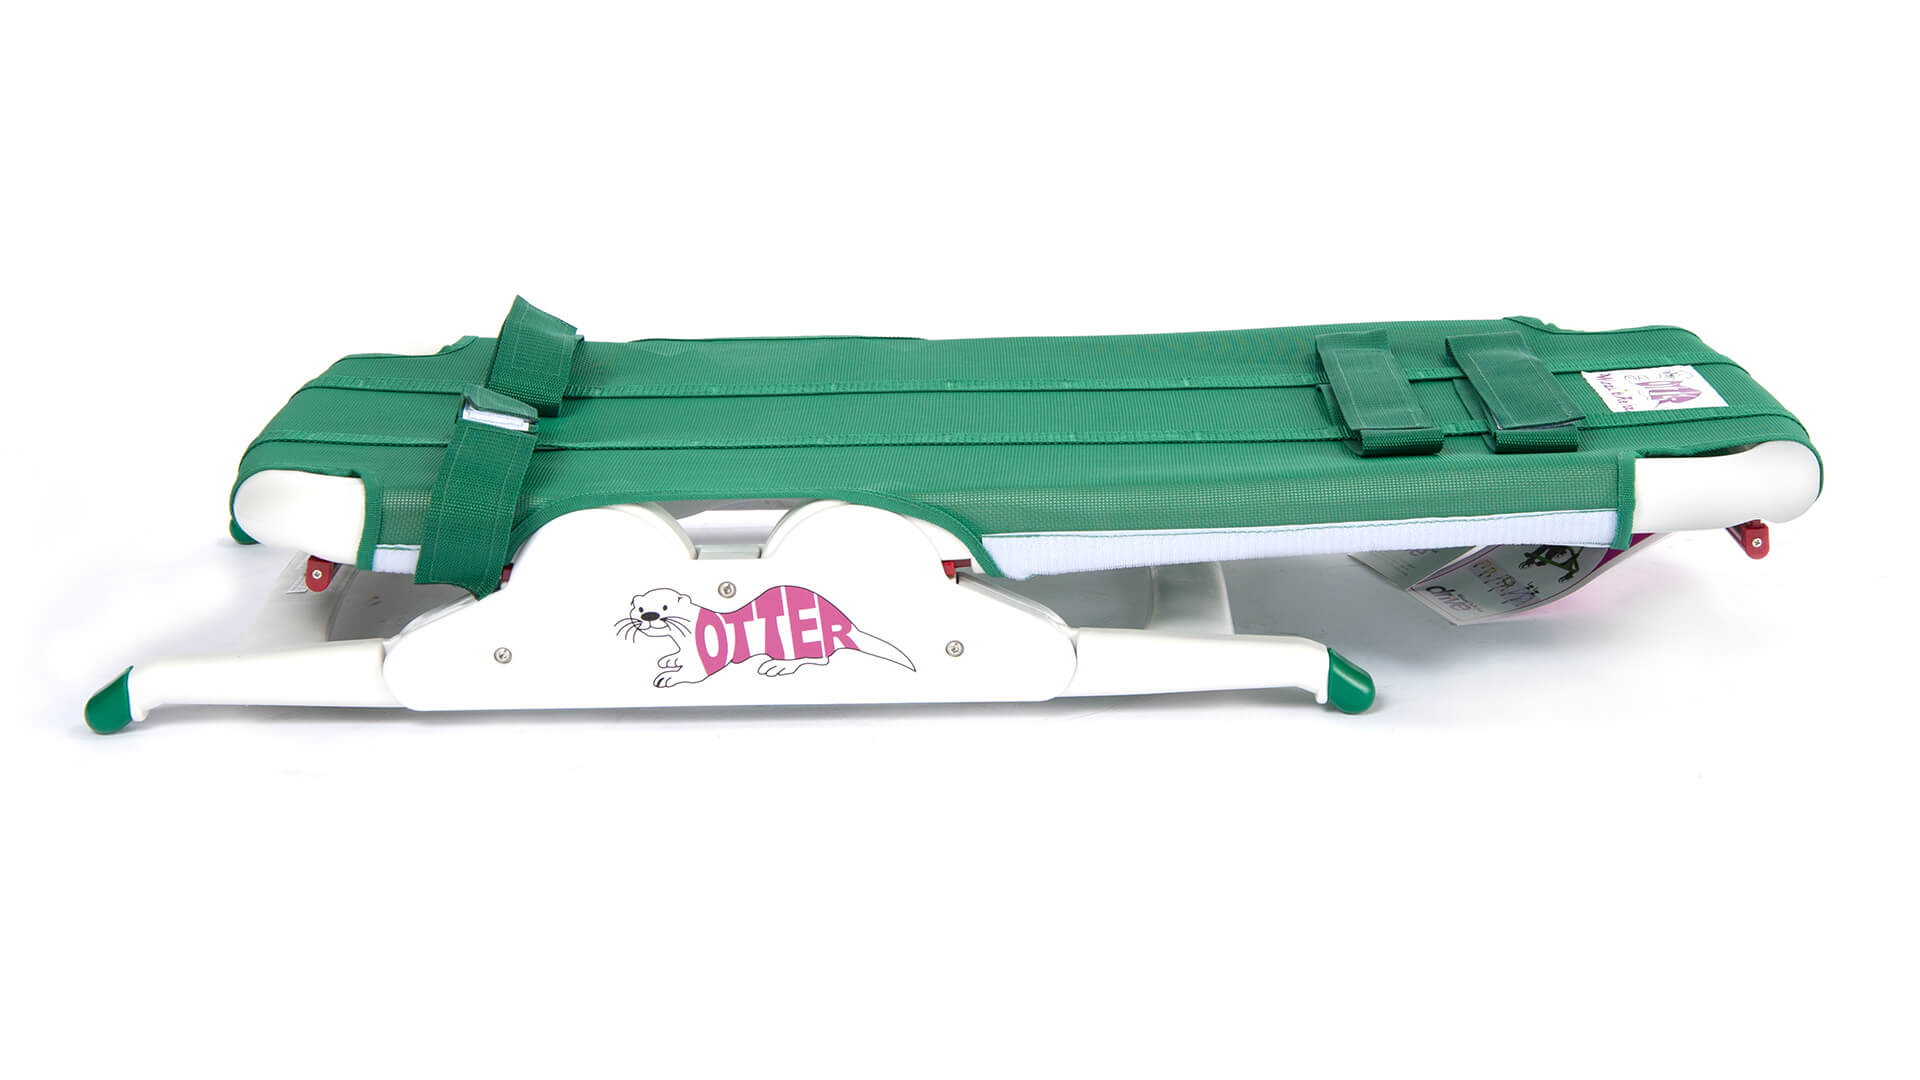 Otter Bath Chair - Inspired by Drive